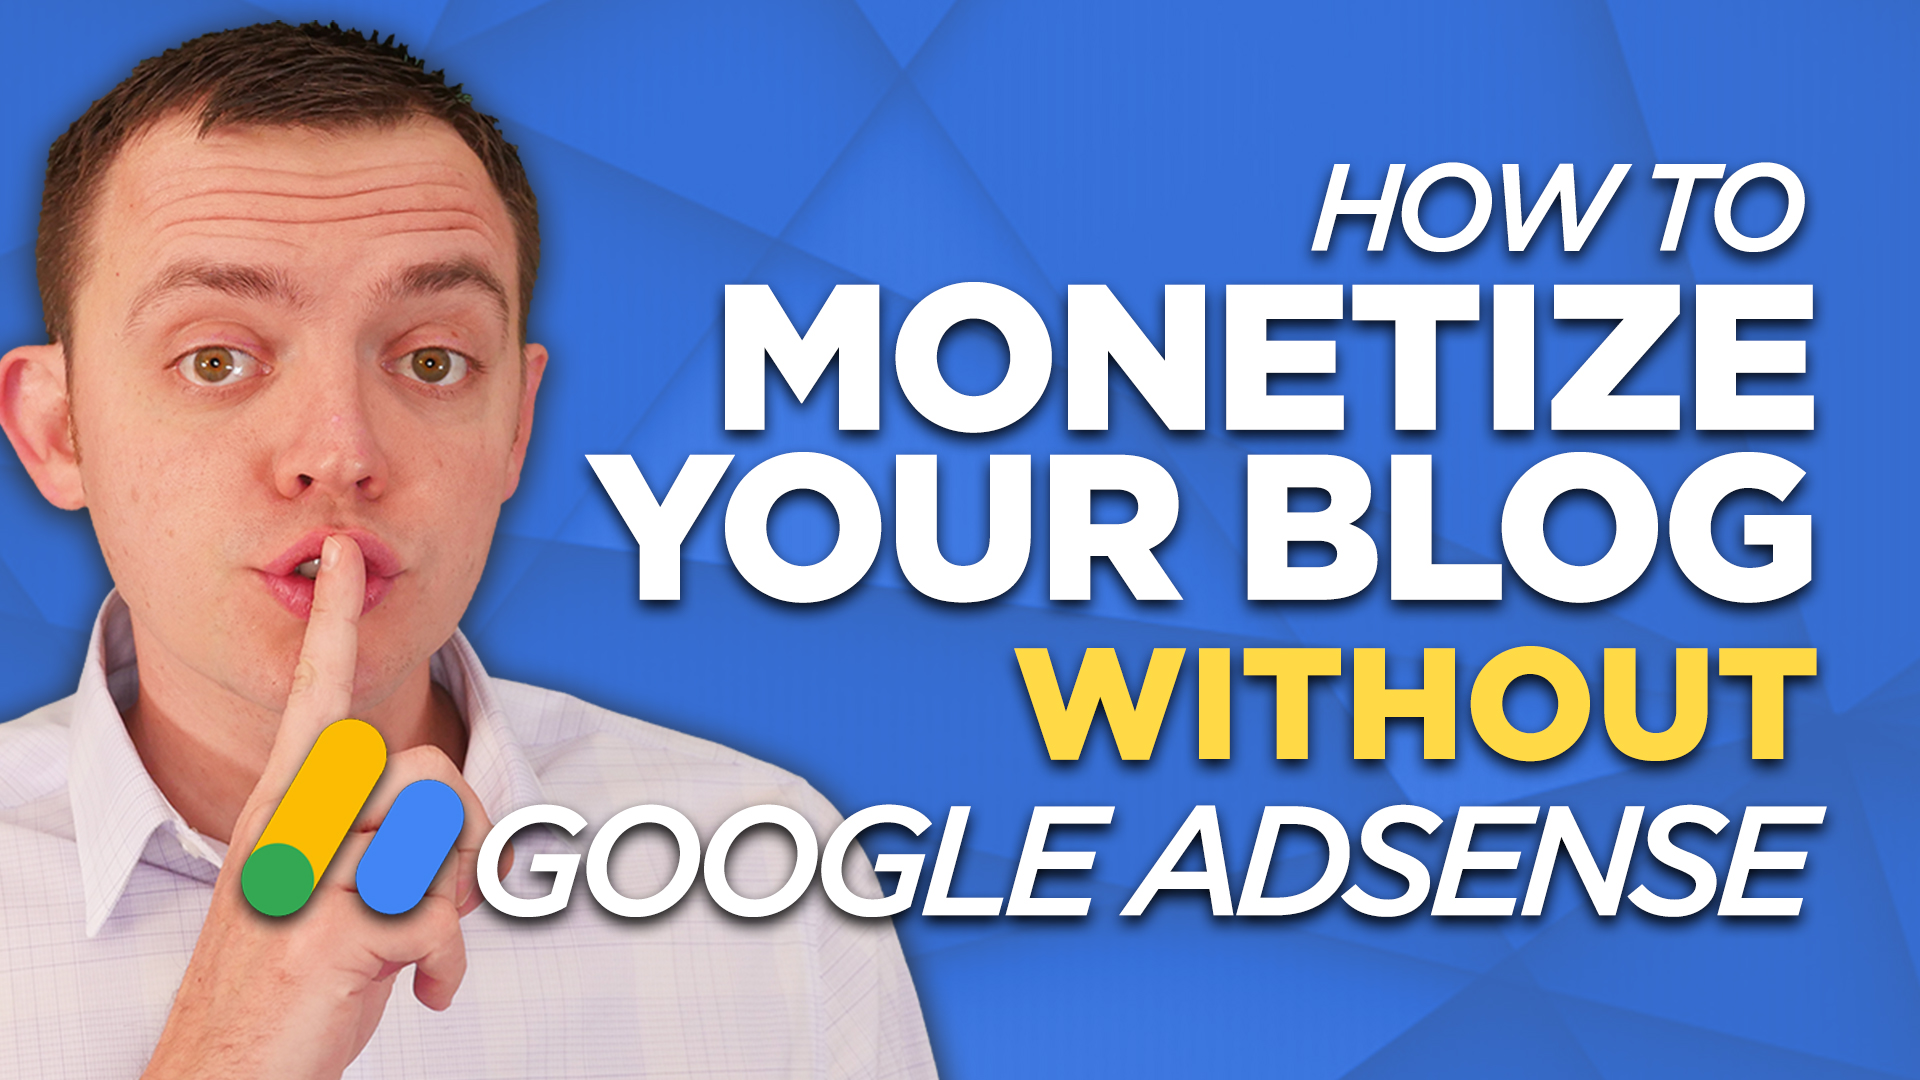 How to Monetize a Blog WITHOUT Google Adsense